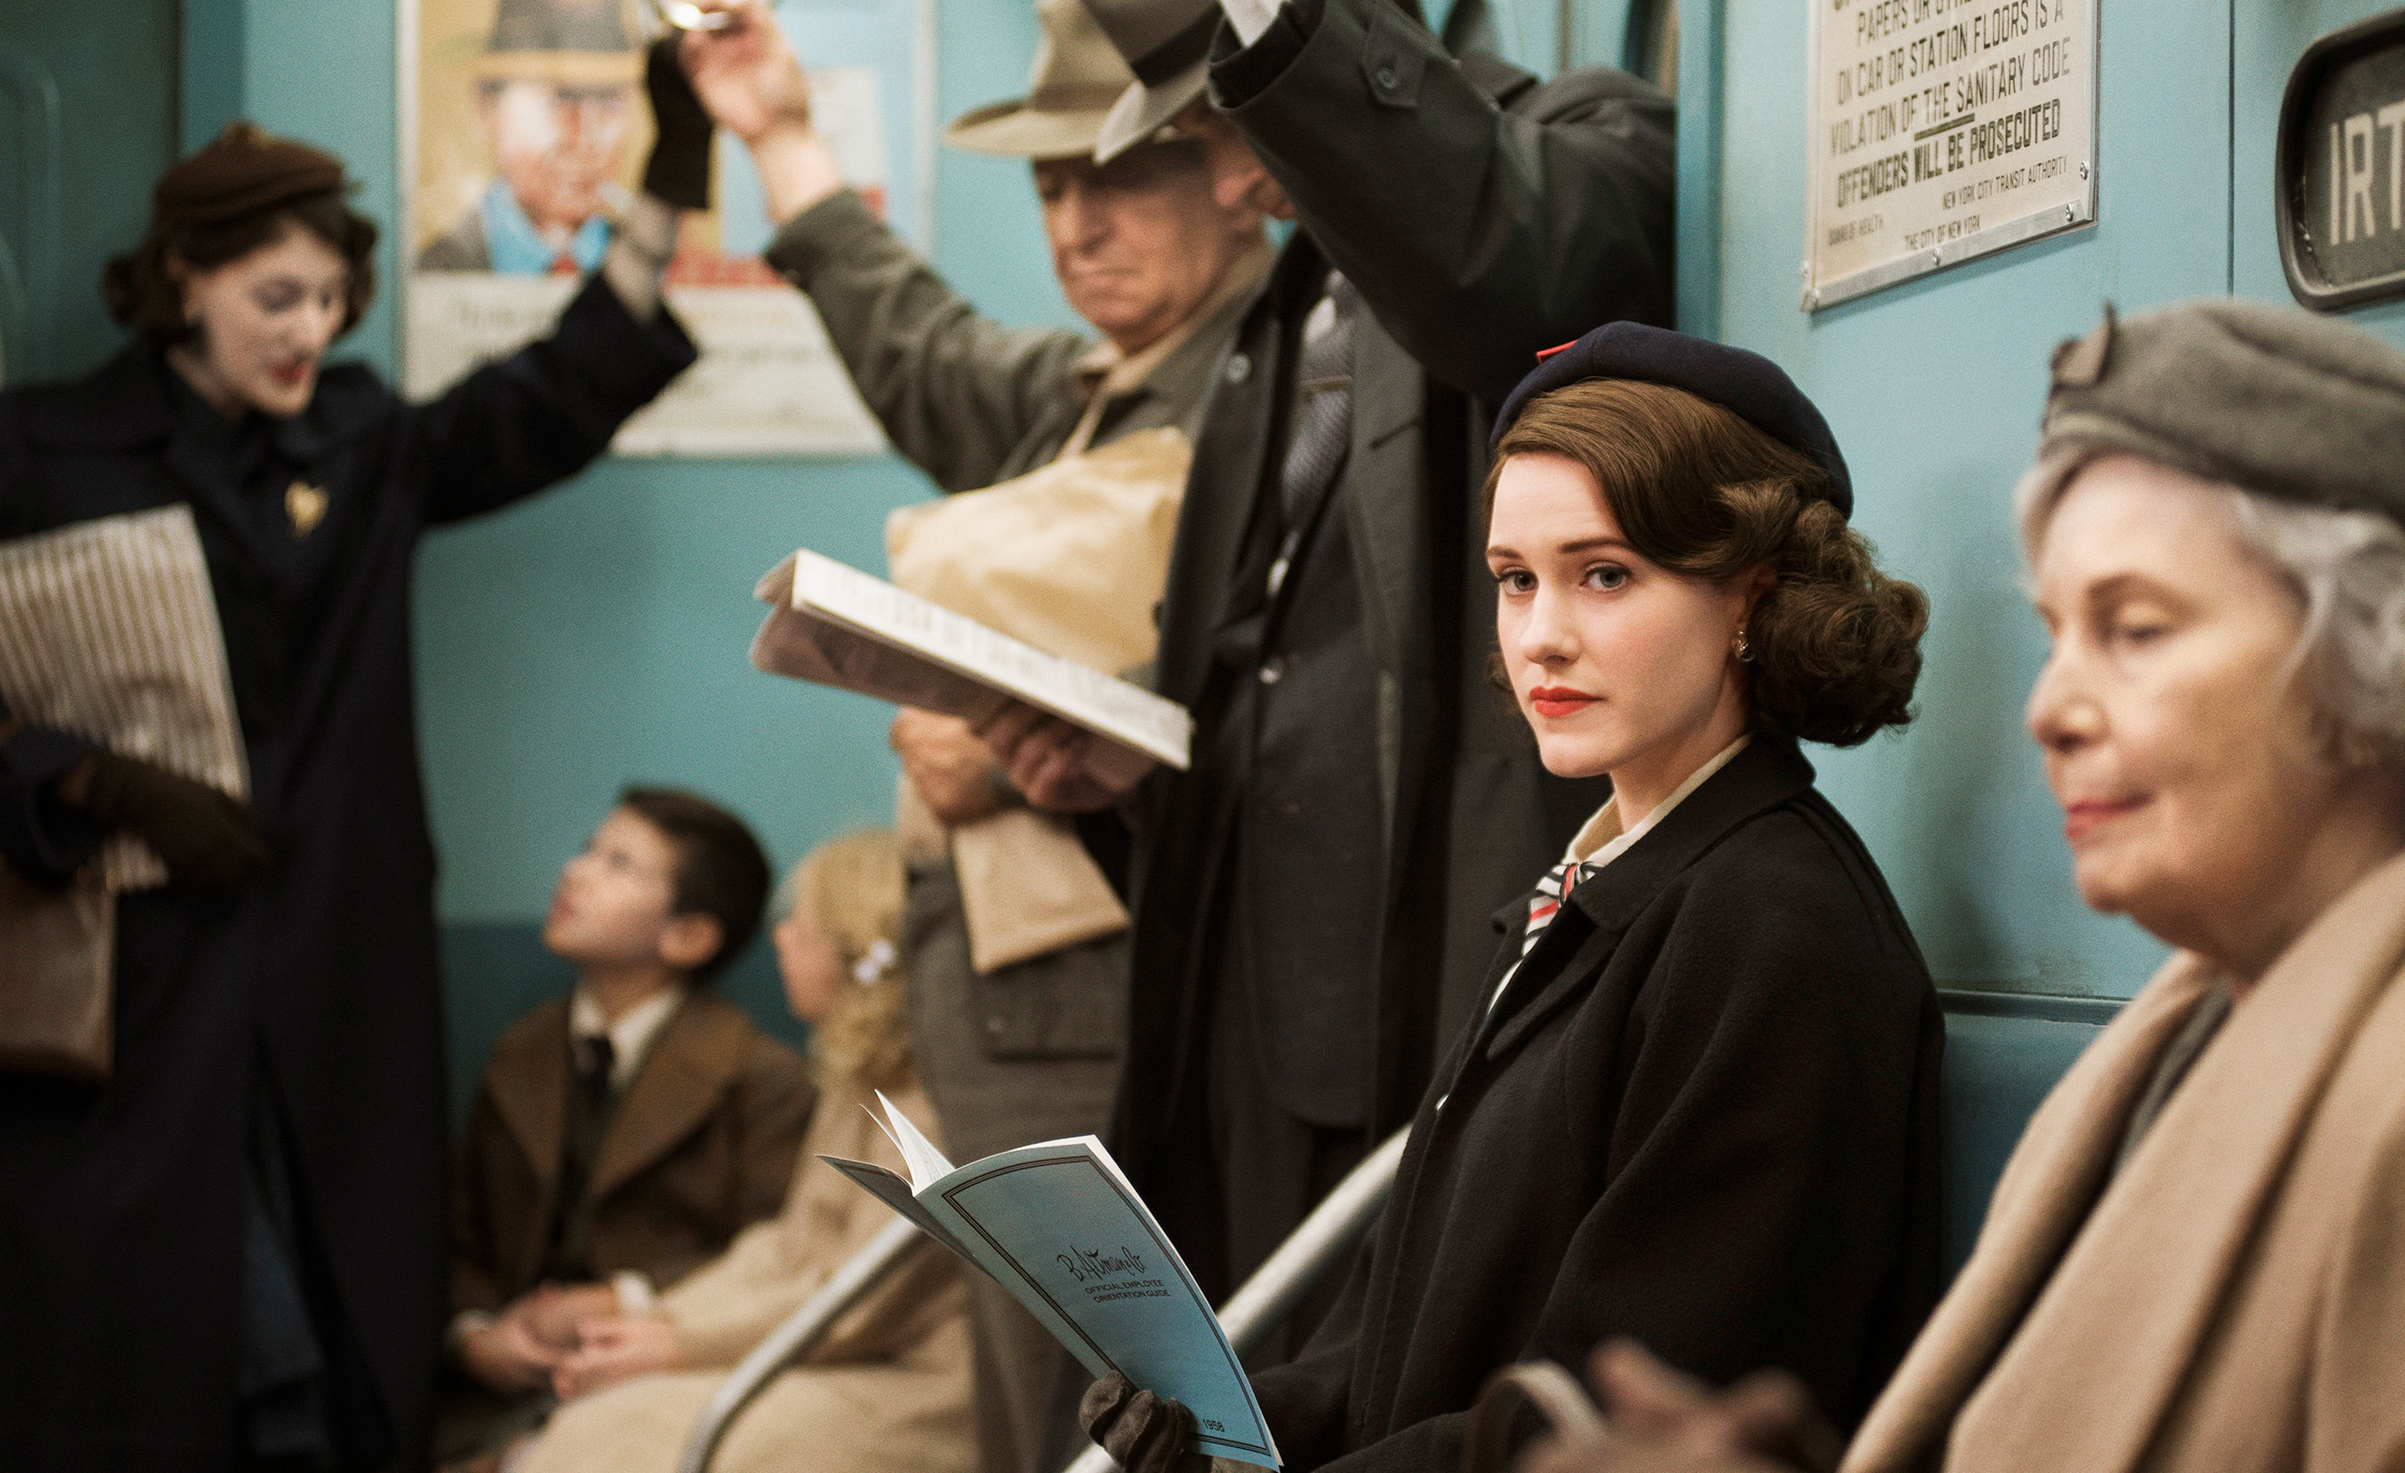 Série féministe série de fille coups de coeur sélection Amazon prime video - The Marvelous Mrs Maisel La fabuleuse Madame Maisel héroïne série à voir regarder en 2019 blog dollyjessy cinéma paris